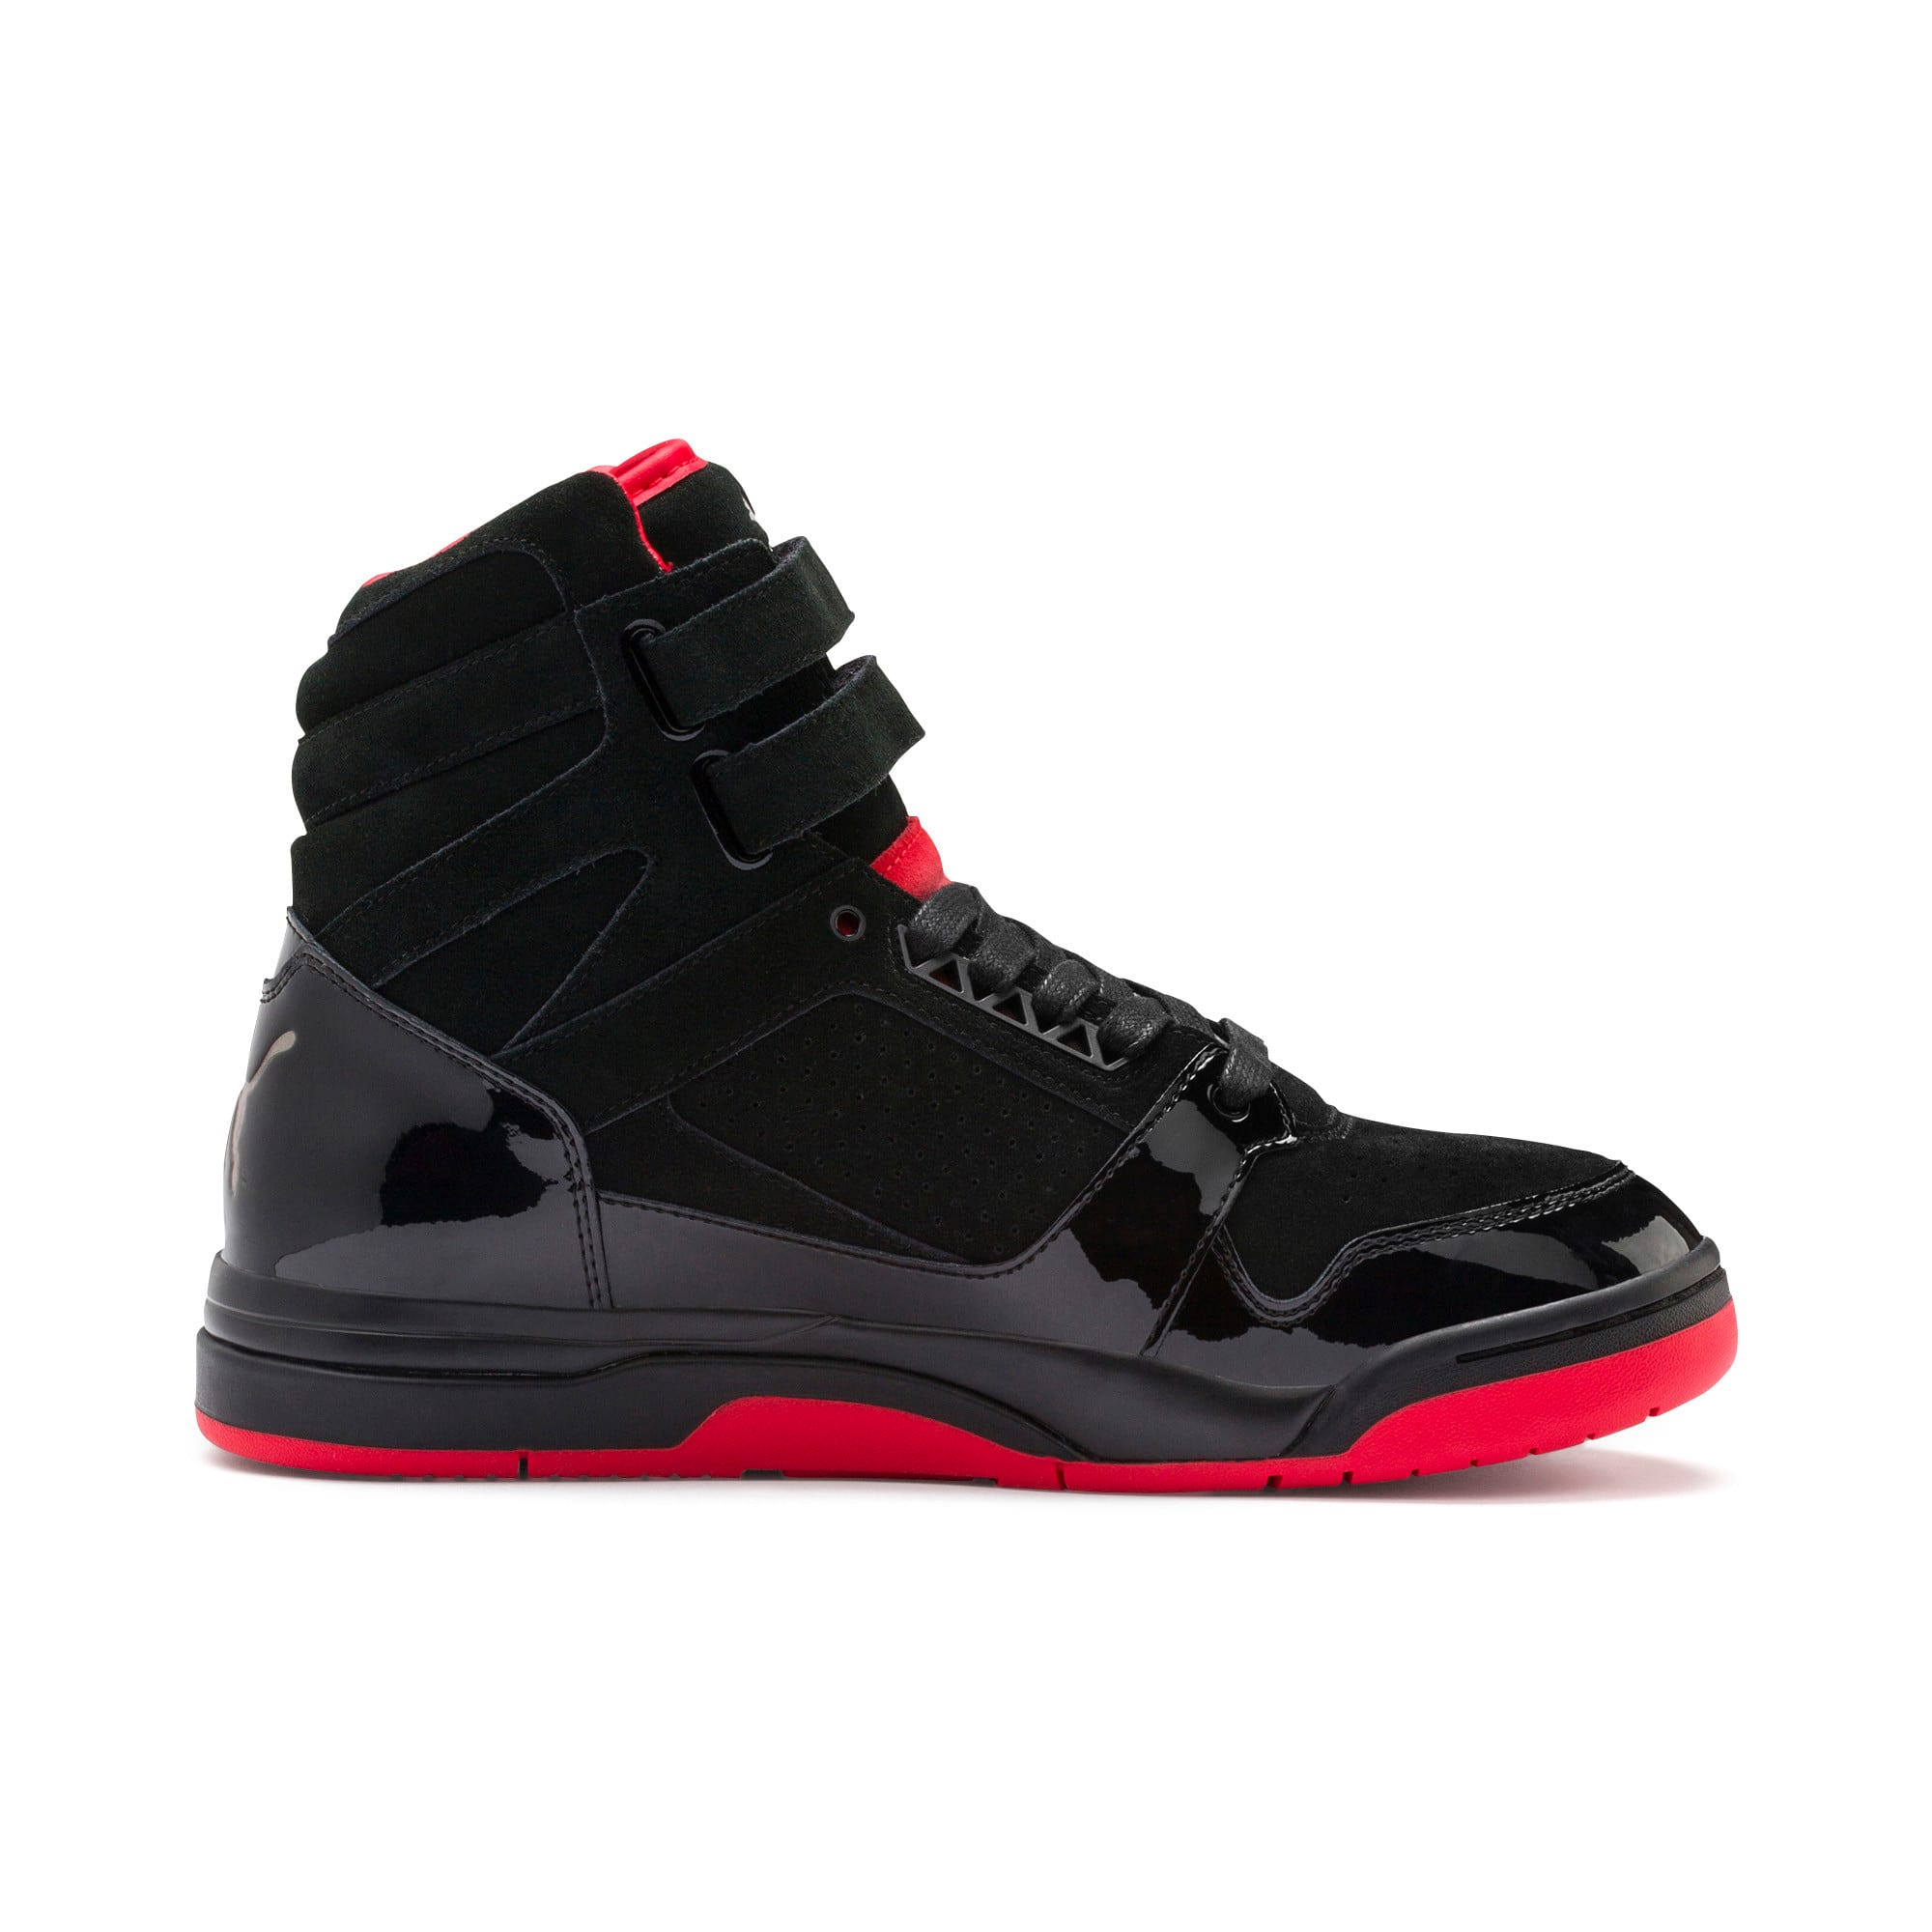 Thumbnail 7 of Palace Guard Red Carpet Mid-Cut Basketball Shoes, Puma Black-Risk Red-Bronze, medium-IND